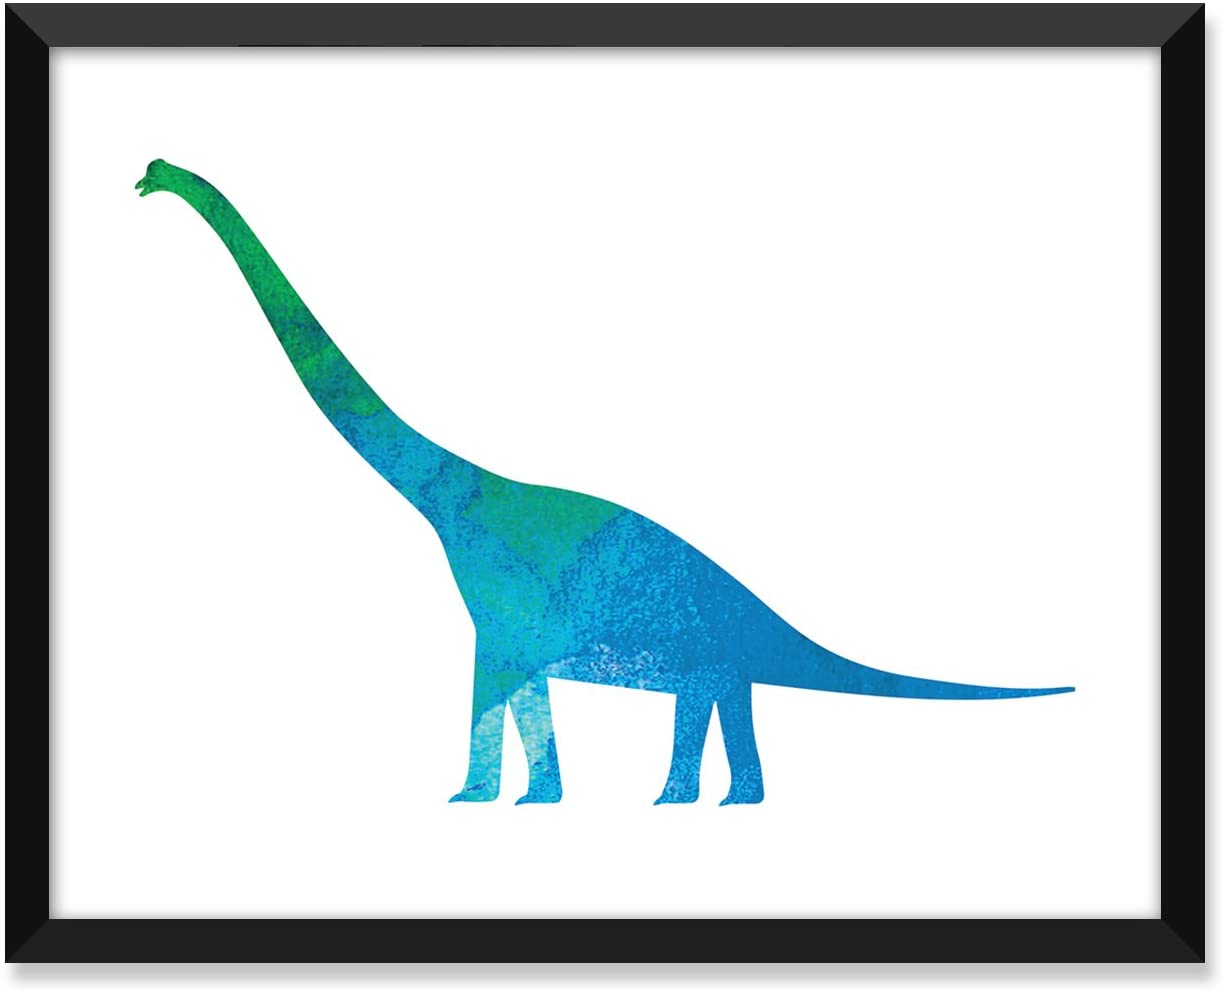 Serif Design Studios Dinosaur 1 Watercolor Blue Green, Nursery Art Print, Minimalist Poster, Home Decor, College Dorm Room Decorations, Wall Art